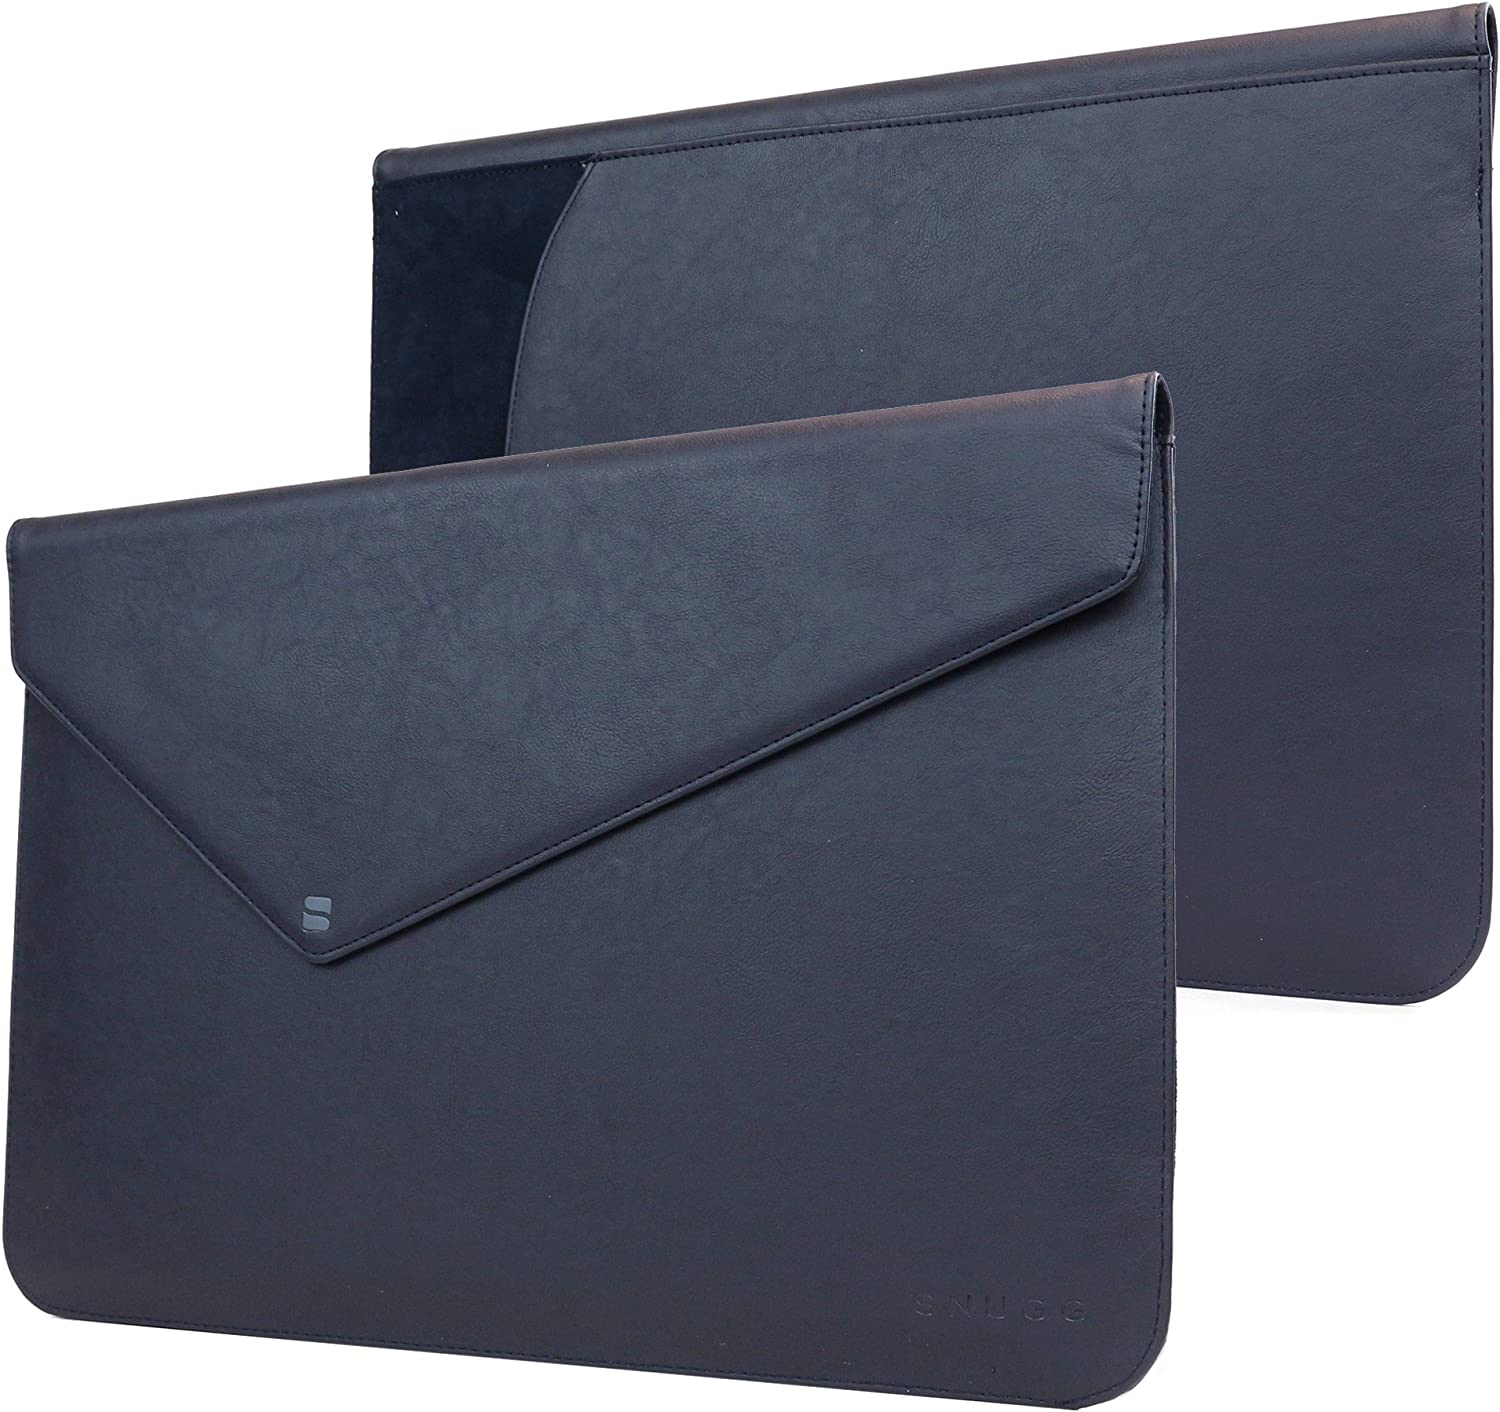 "MacBook Pro Touch 15"" (2016, 2017) Sleeve, Snugg - Riverside Blue Leather Sleeve Case Protective Cover for MacBook Pro Touch 15"" (2016, 2017) 15"" Touchbar"